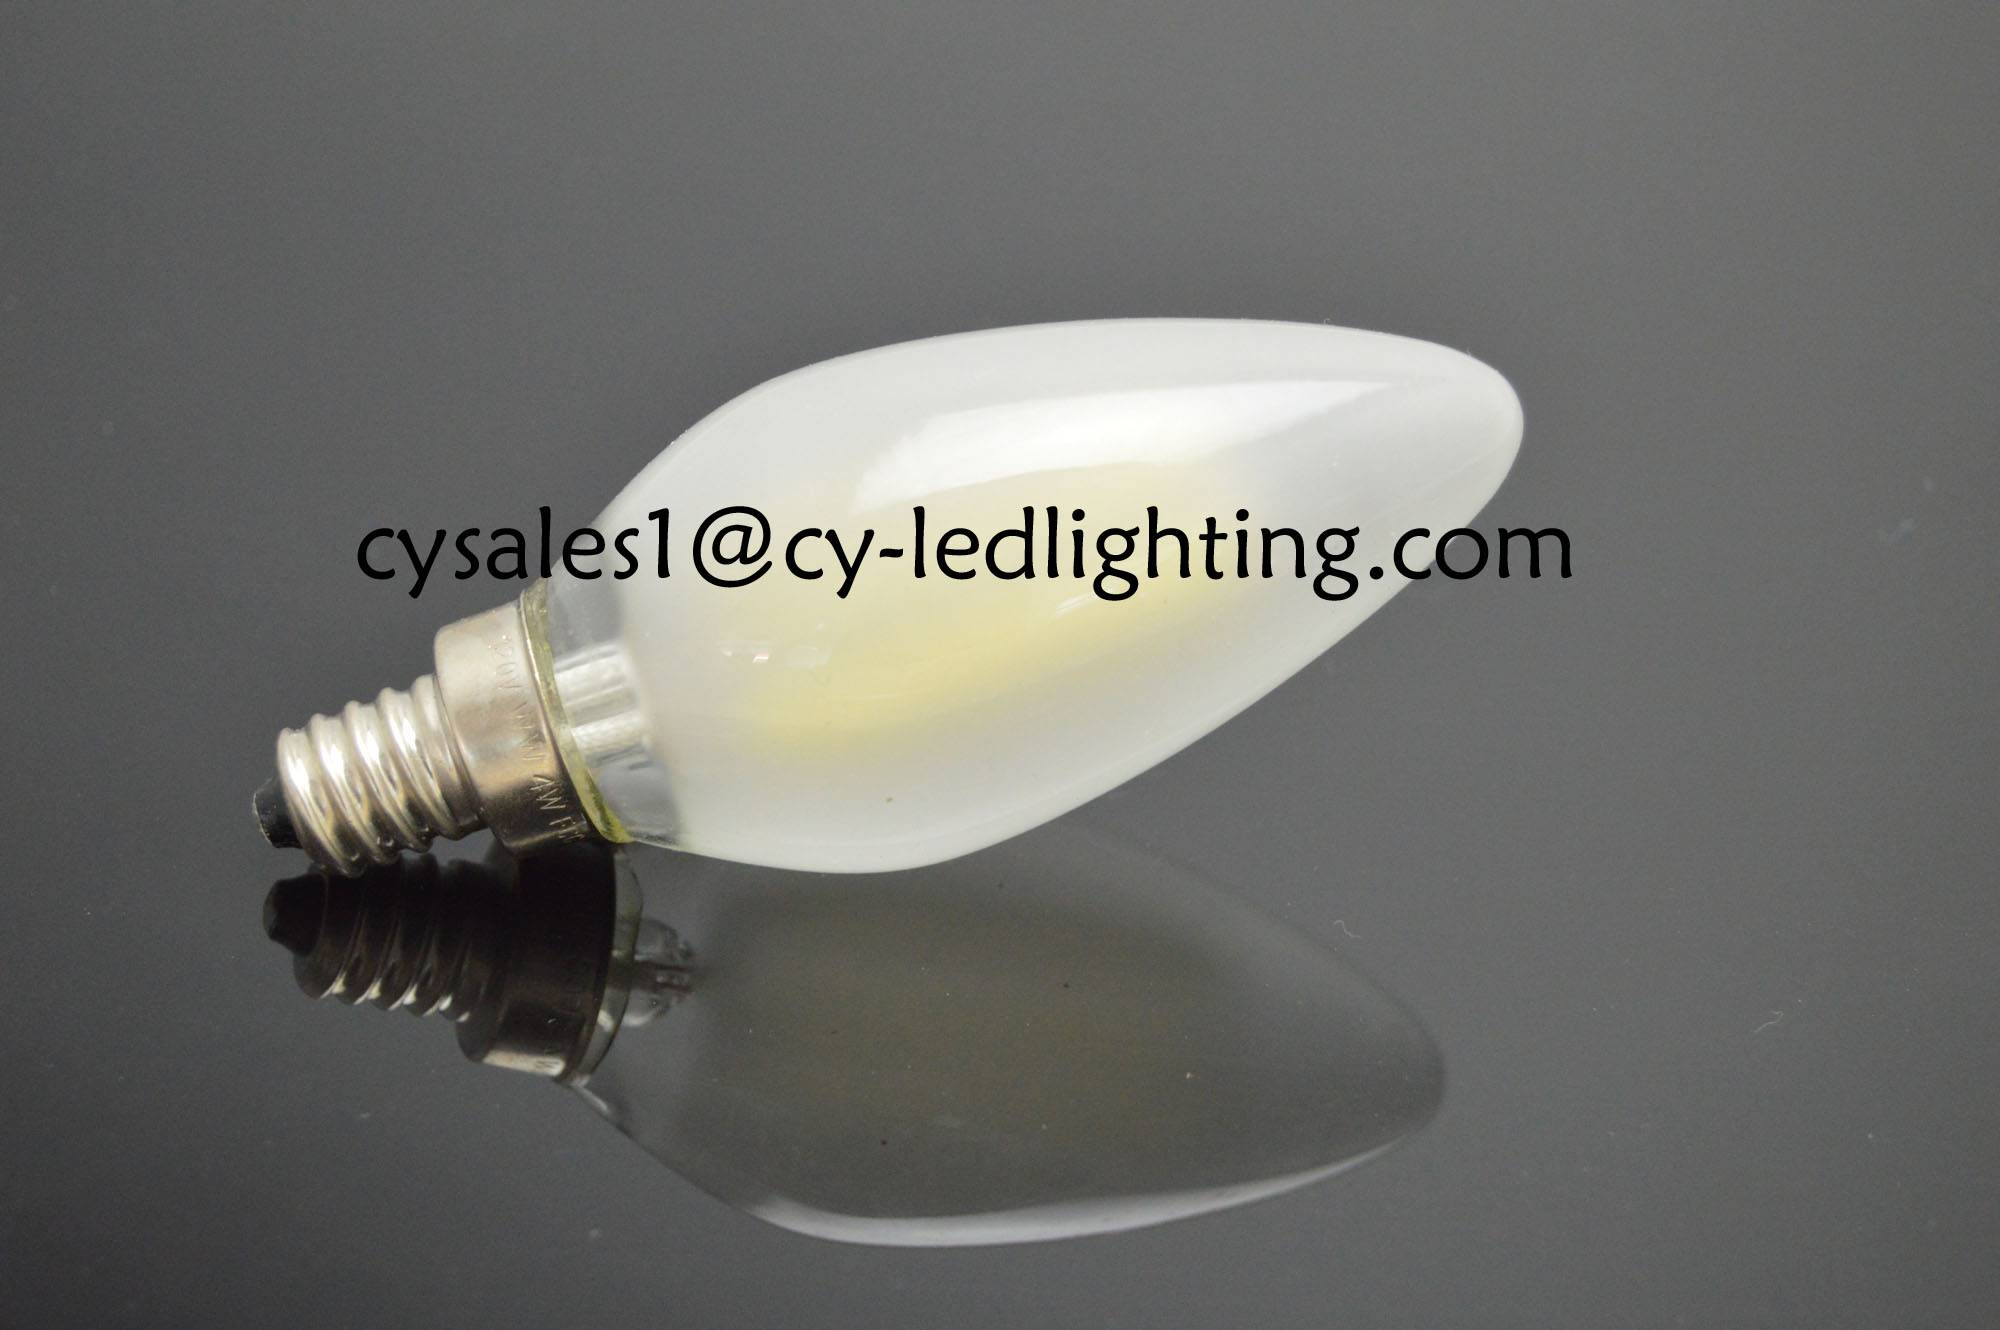 Frosty candle filament led bulb pendant lamp decorated led light bulb